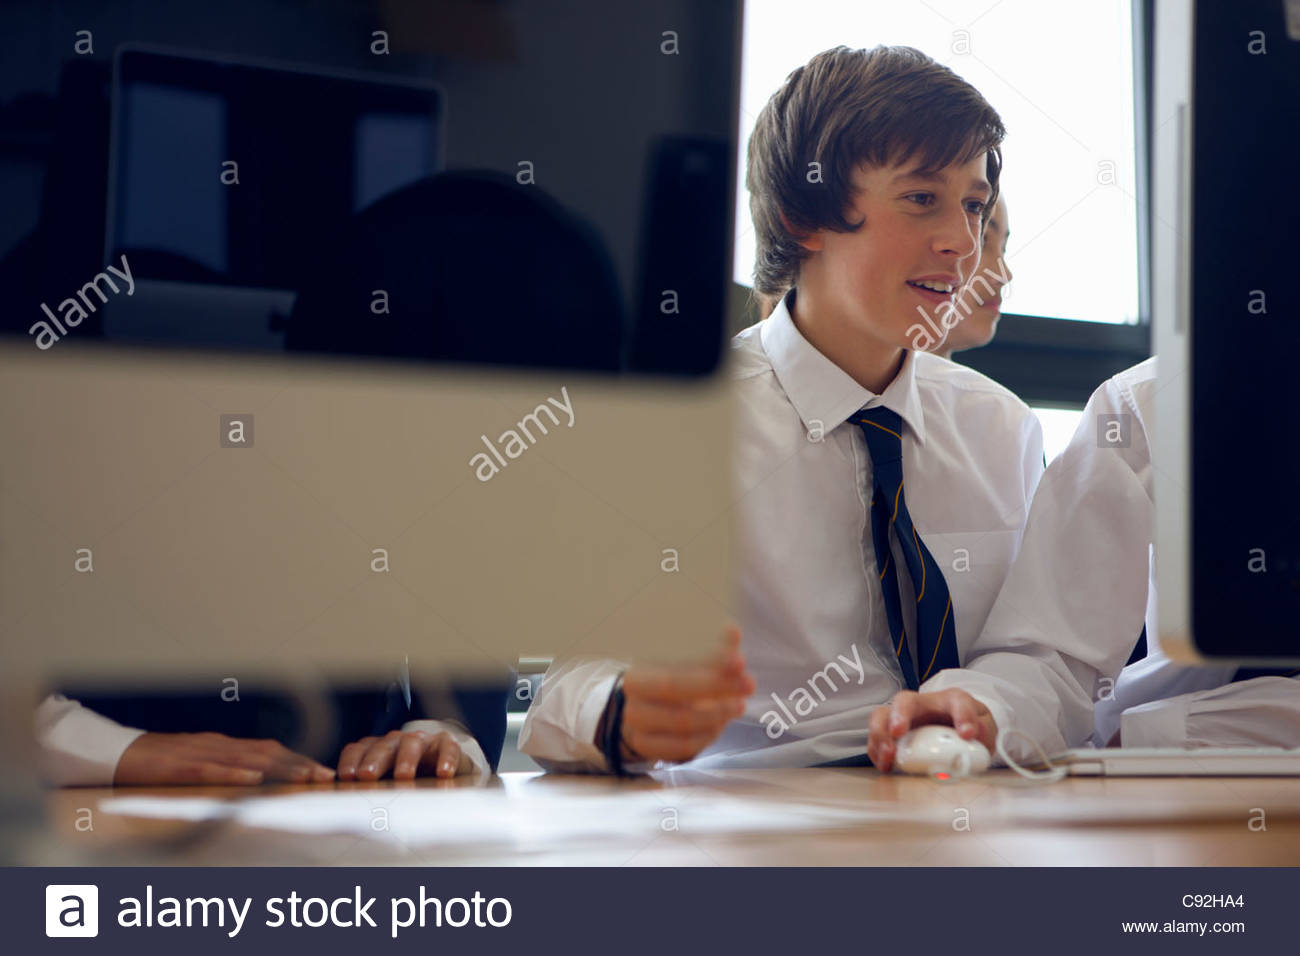 Students in school uniform using computers - Stock Image